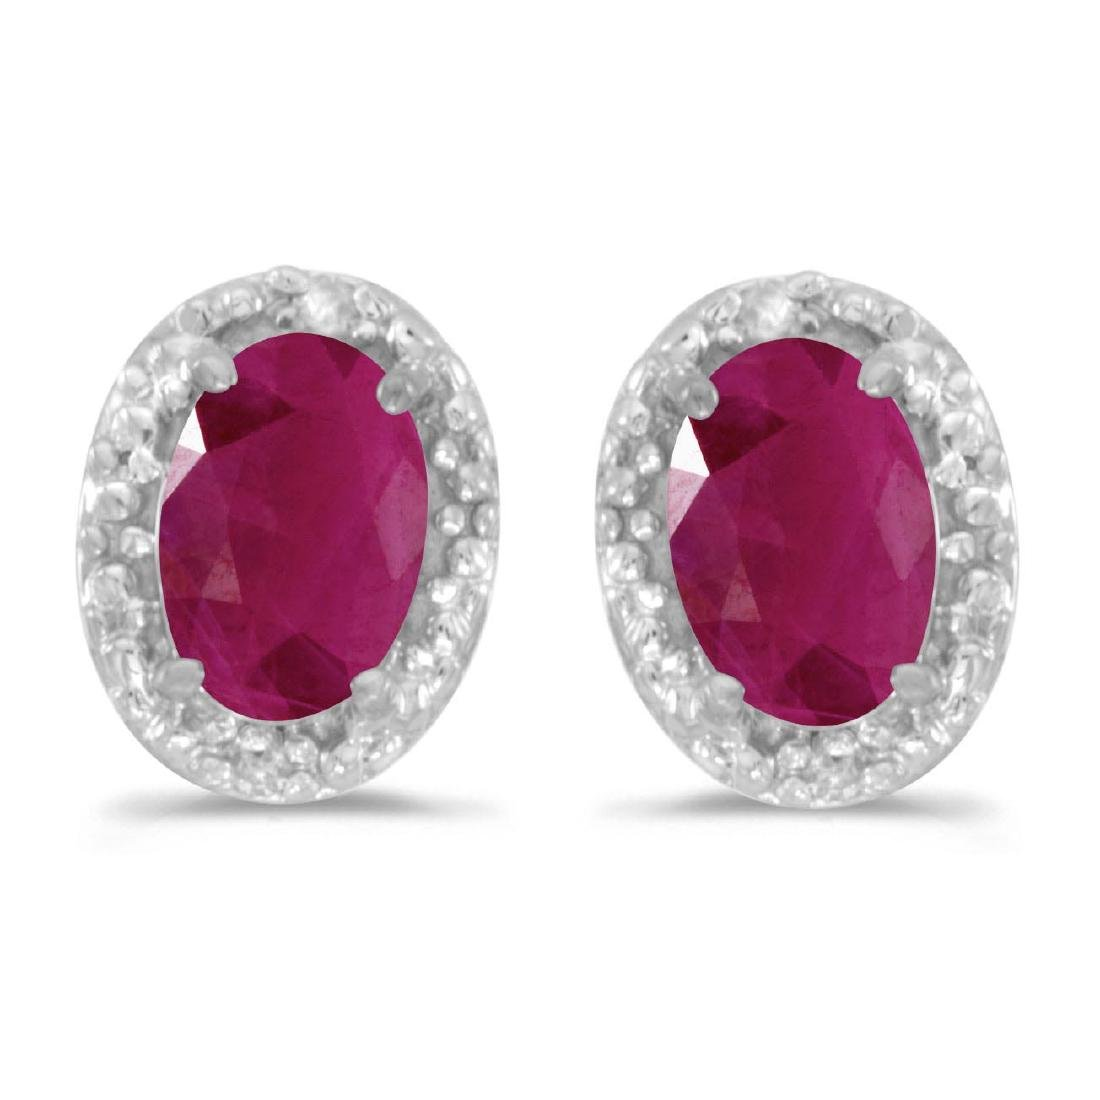 Certified 14k White Gold Oval Ruby And Diamond Earrings